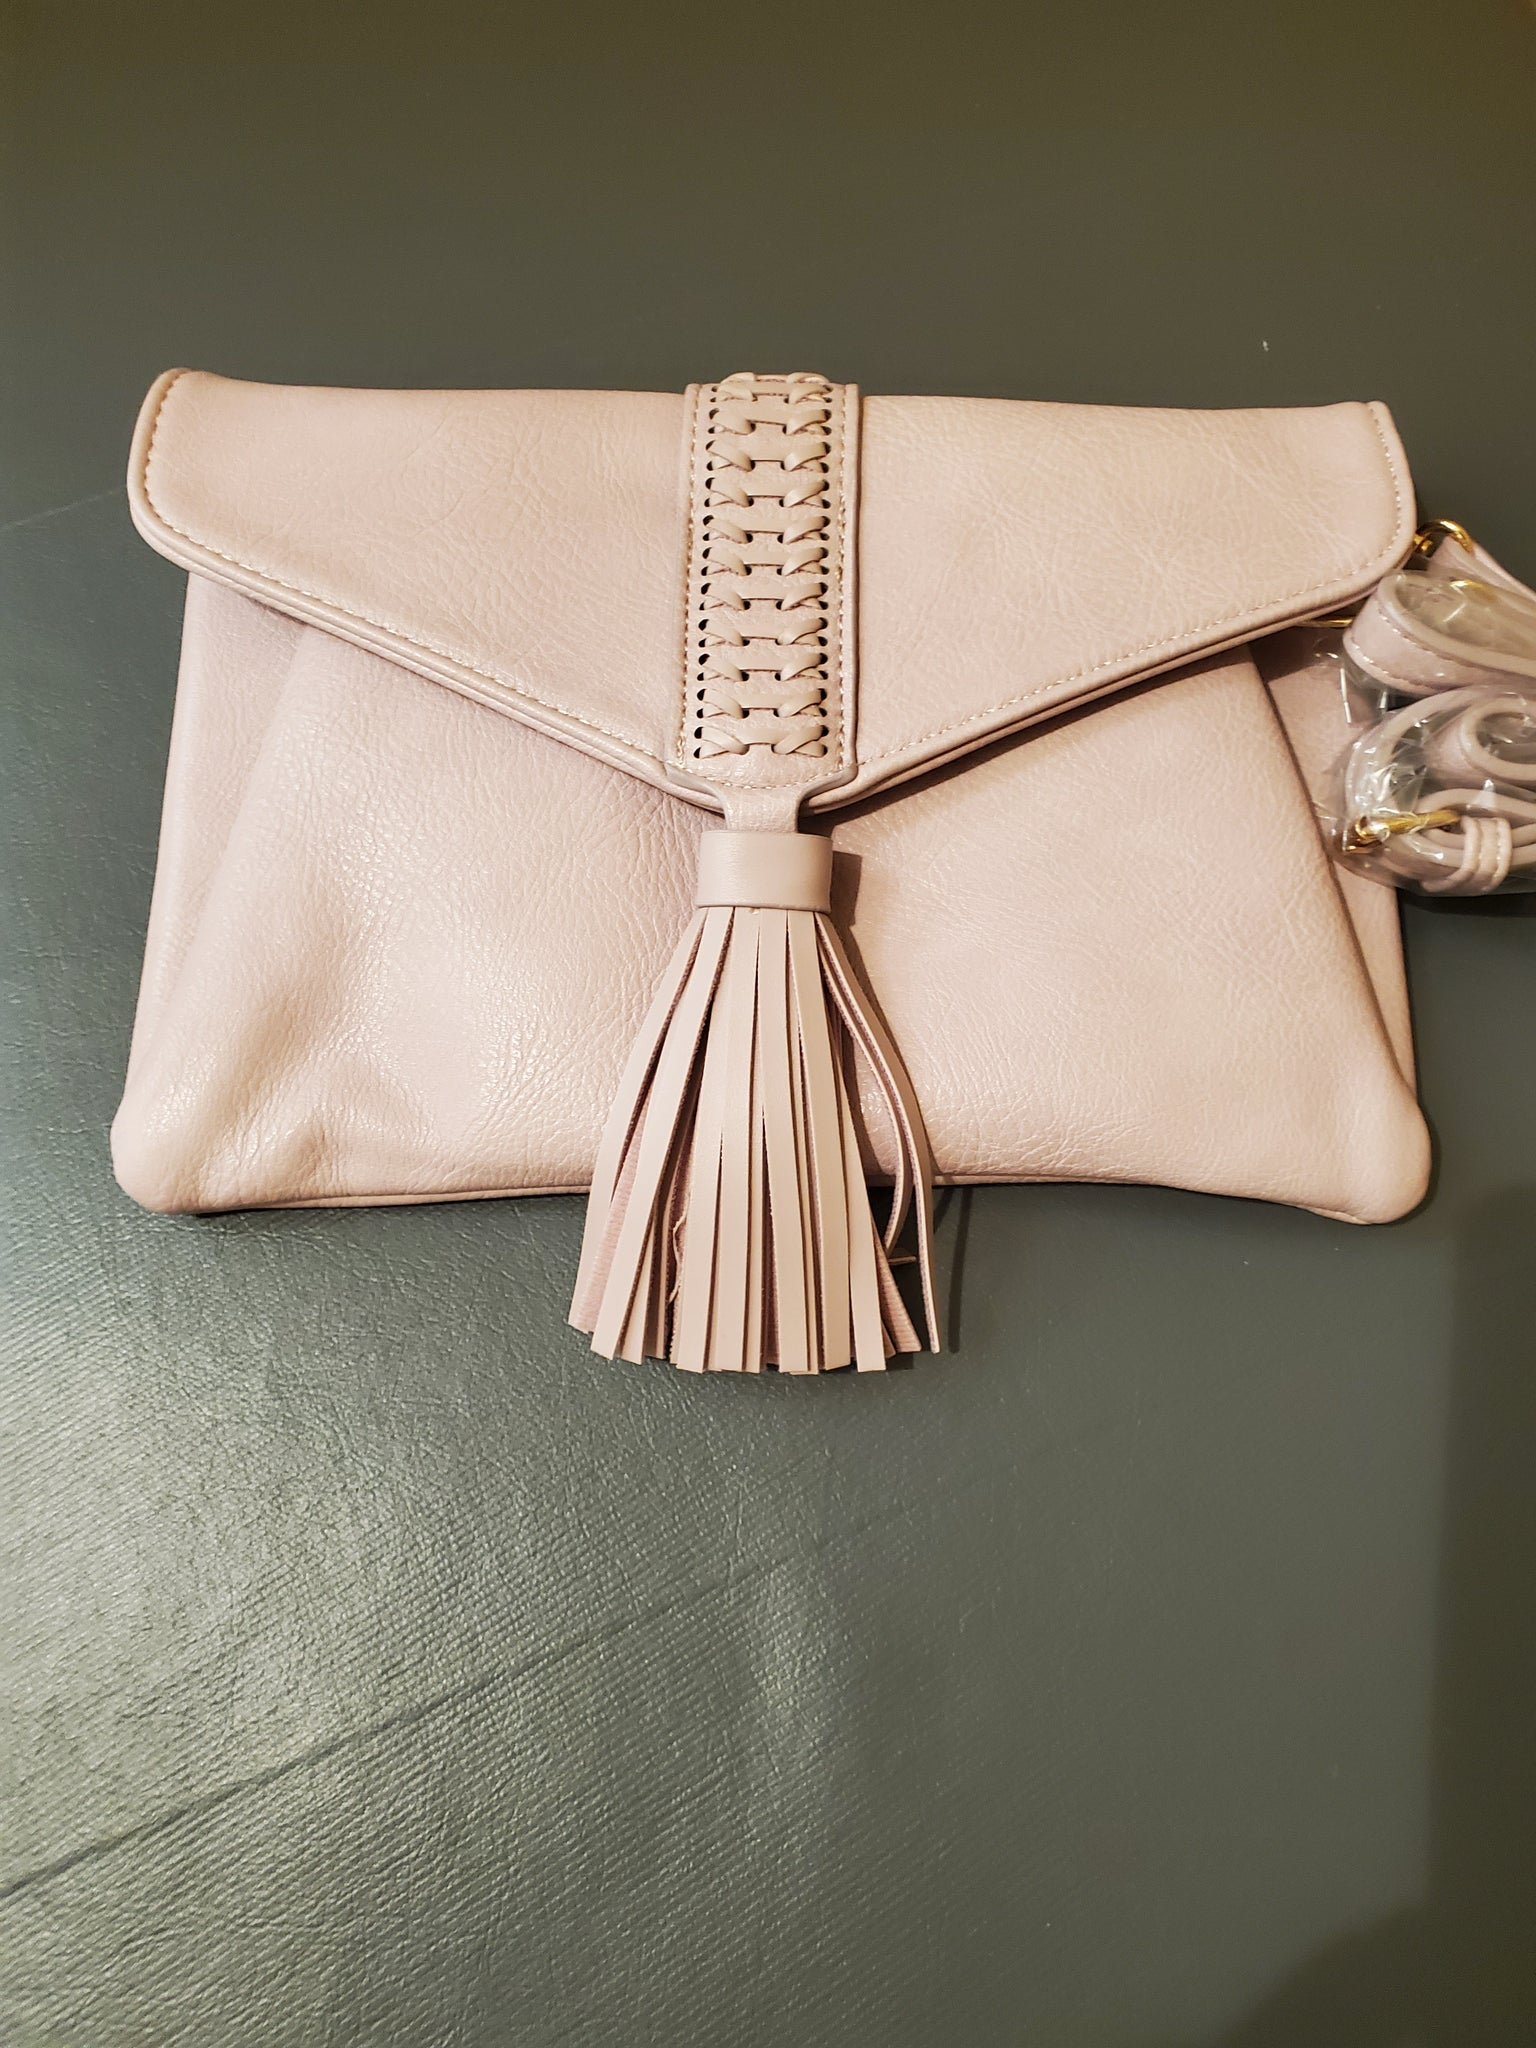 Blush Whipstitch tassle clutch/crossbody